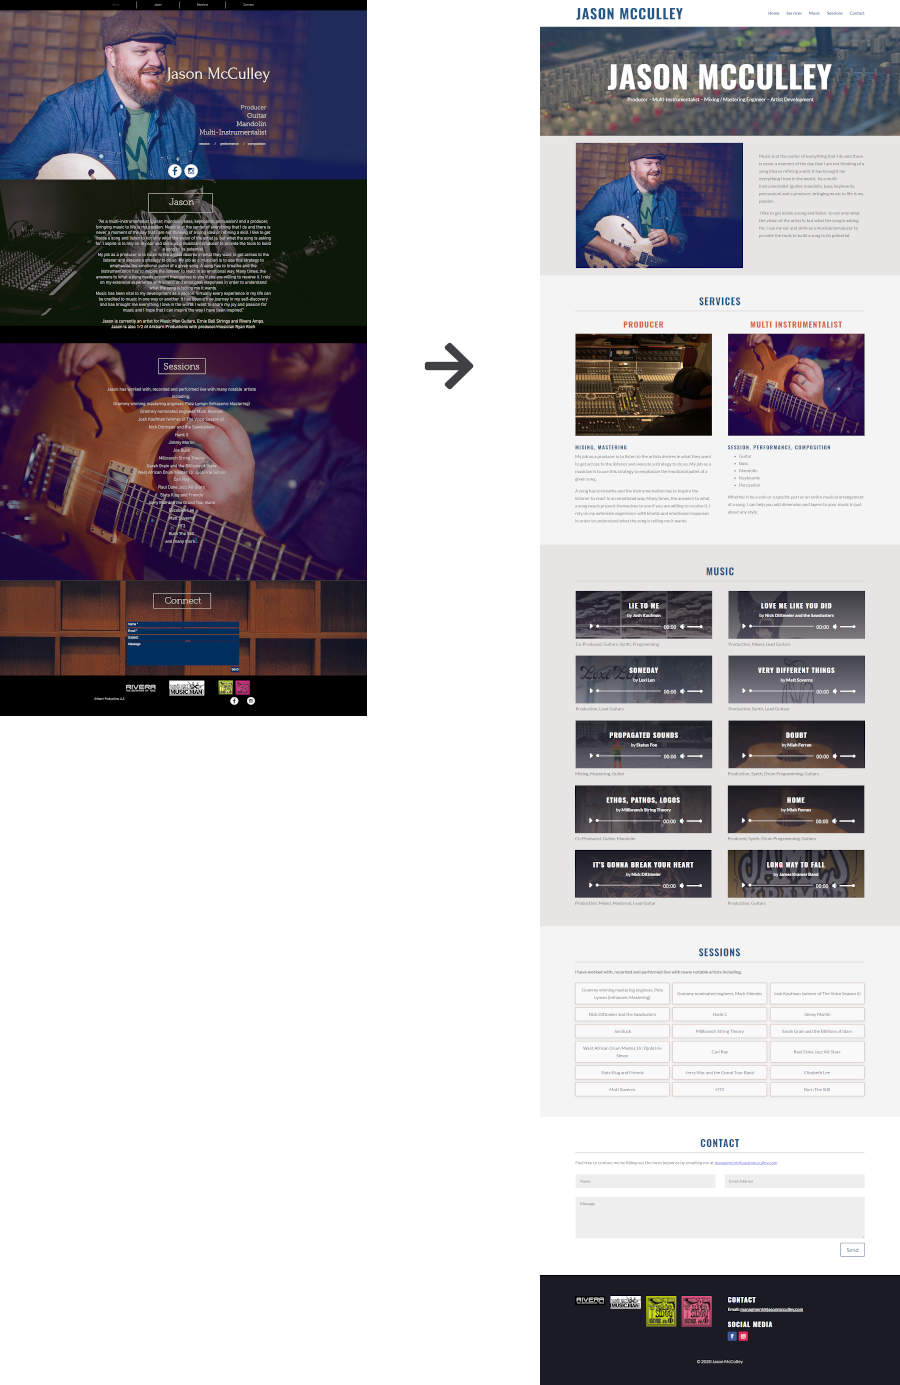 Image showing the Jason McCulley Website before and after redesign